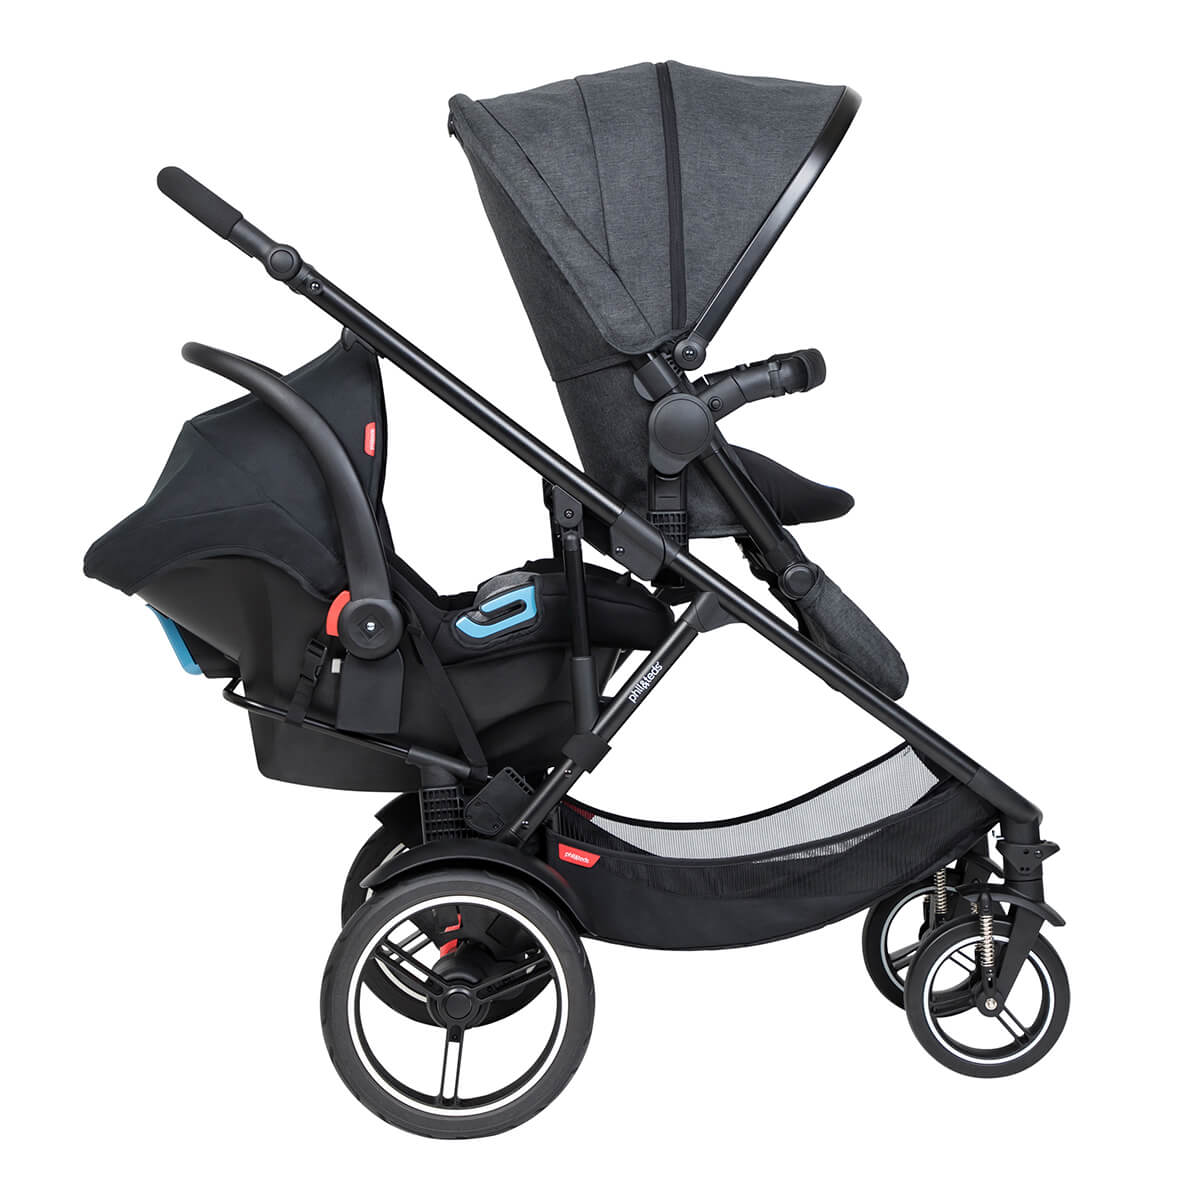 https://cdn.accentuate.io/4509916495949/19466204250306/philteds-voyager-buggy-in-forward-facing-mode-with-travel-system-in-the-rear-v1626485594286.jpg?1200x1200